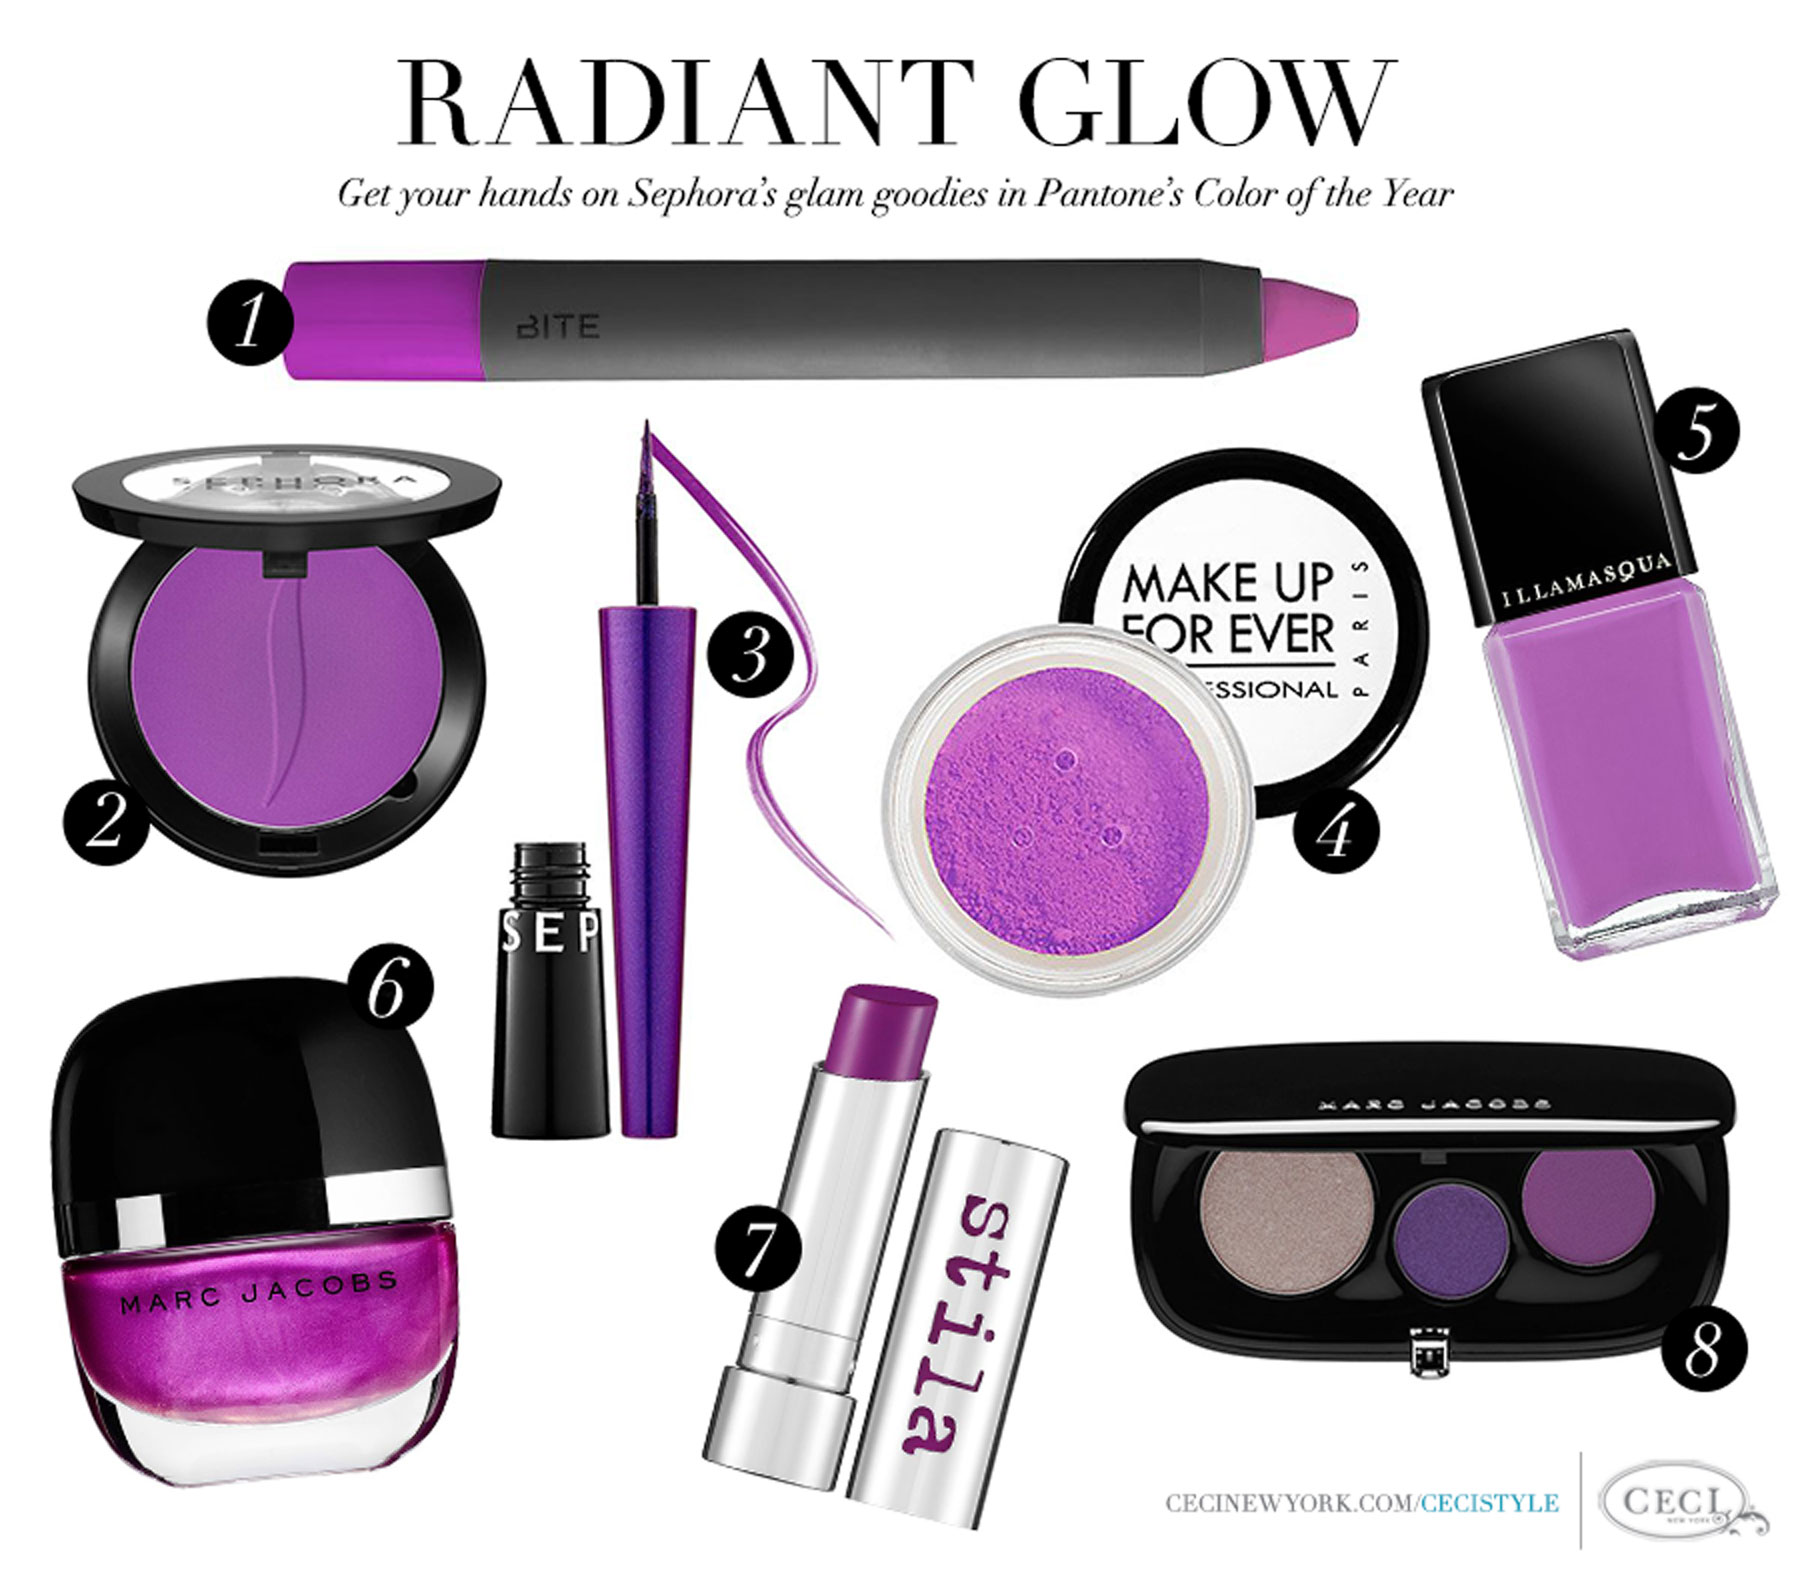 Radiant Glow - Get your hands on Sephora's glam goodies in Pantone's Color of the Year